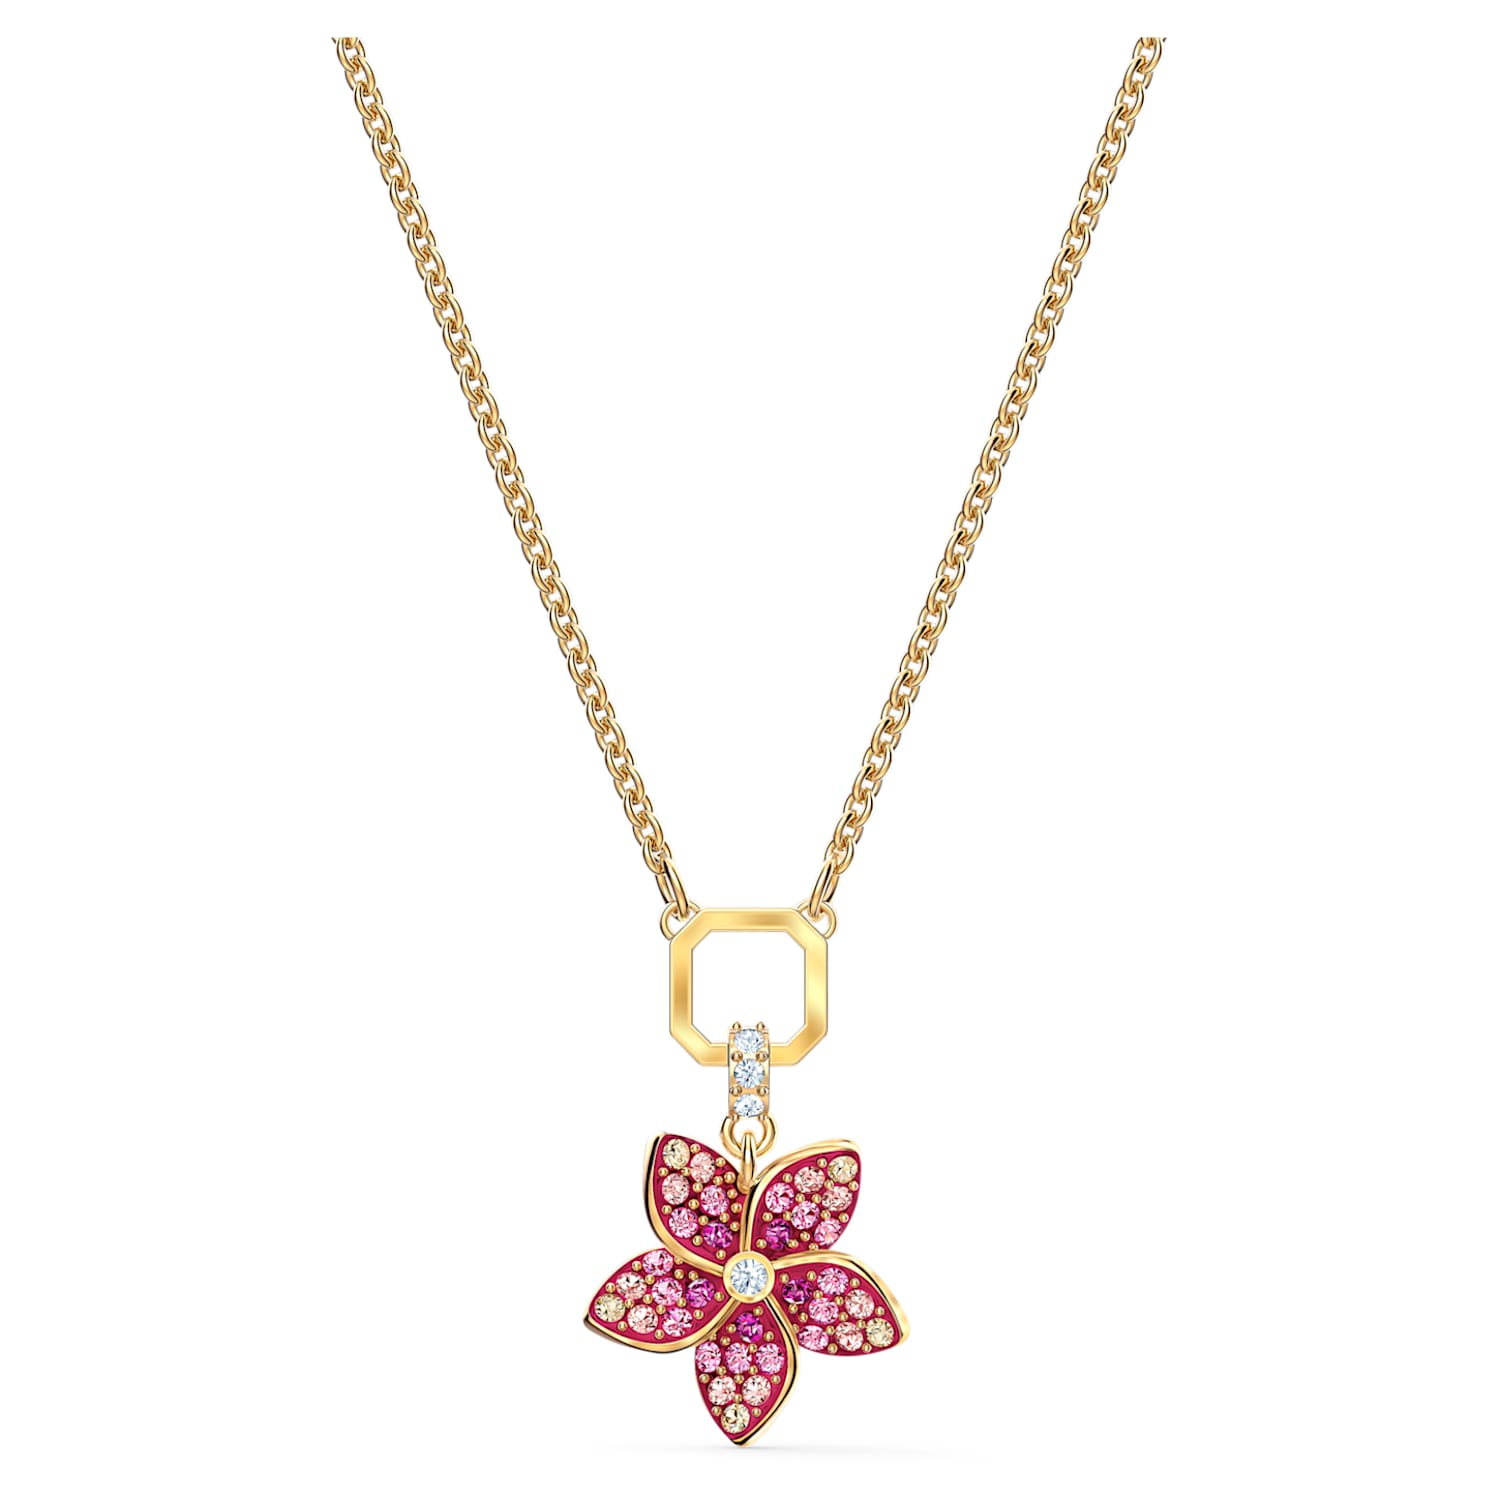 MS5 Fashion Jewelry - understanding and reason Bico Cyrilli Crystal Pendant